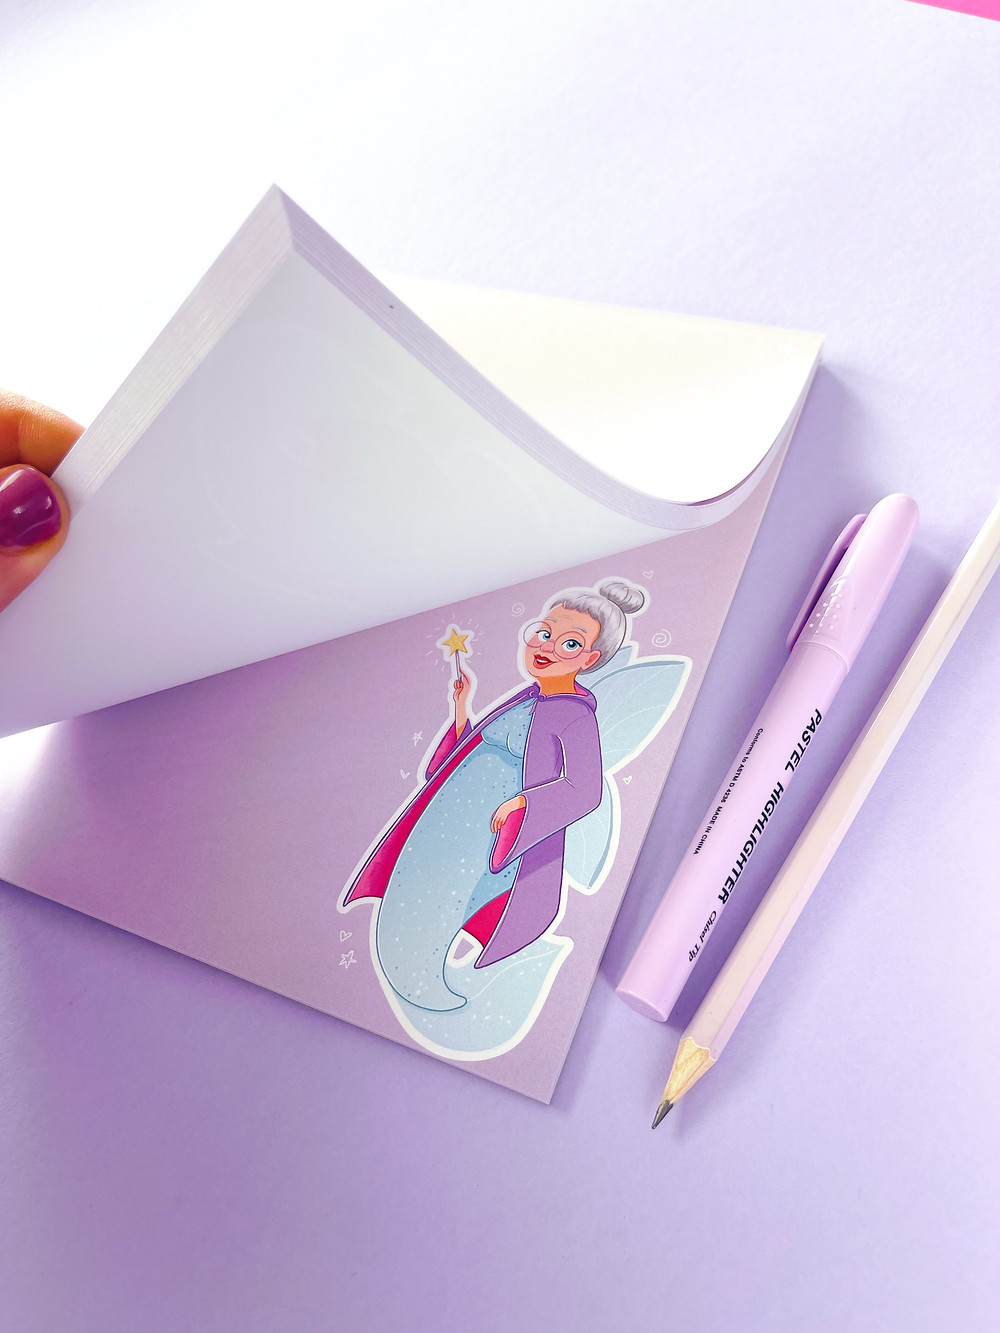 A notepad featuring a Fairy Godmother character by Emily Harvey Art